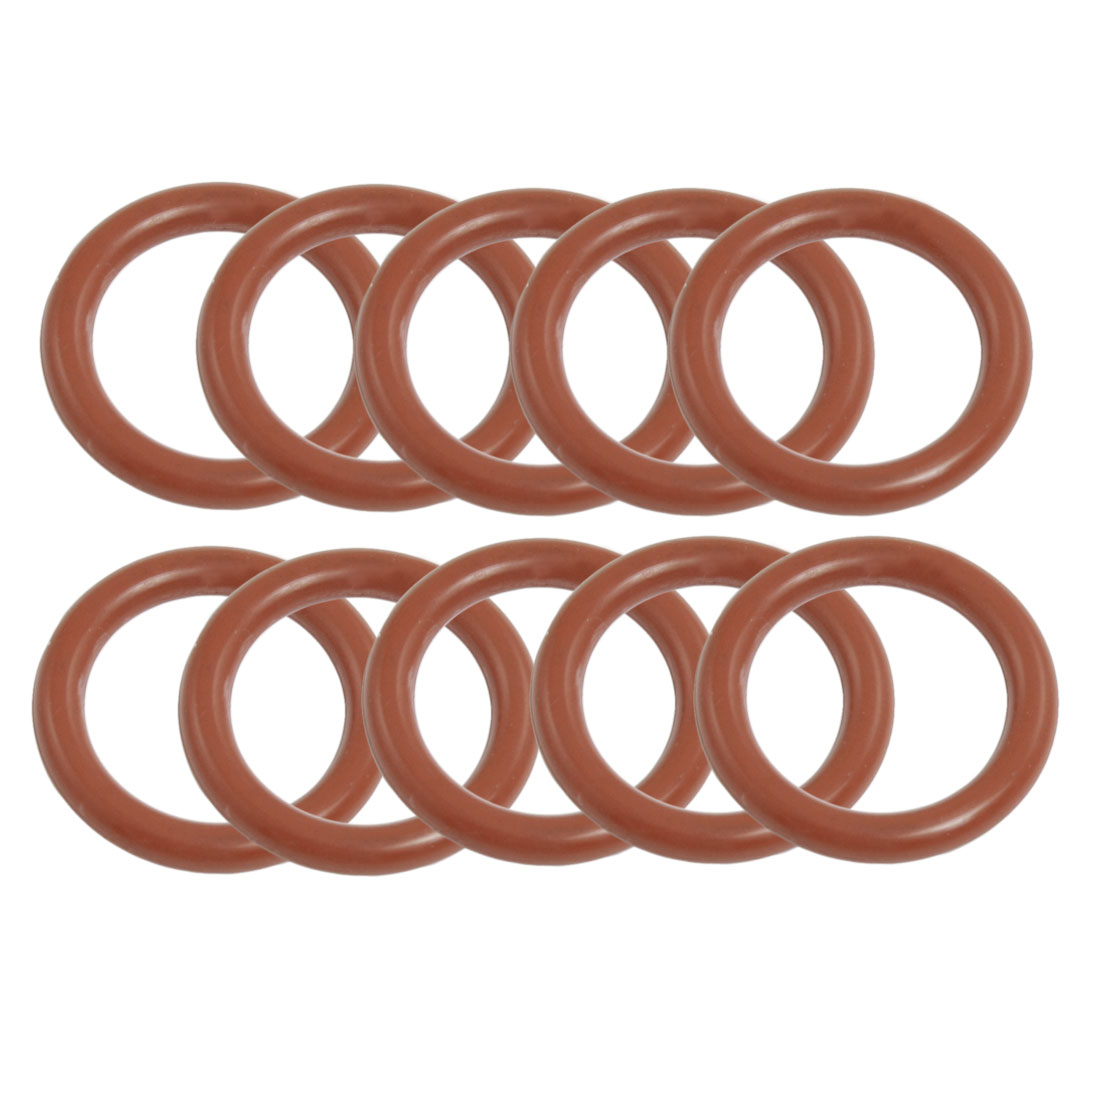 10 Pcs 25mm OD 3.5mm Thickness Red Silicone O Rings Oil Seal Gaskets